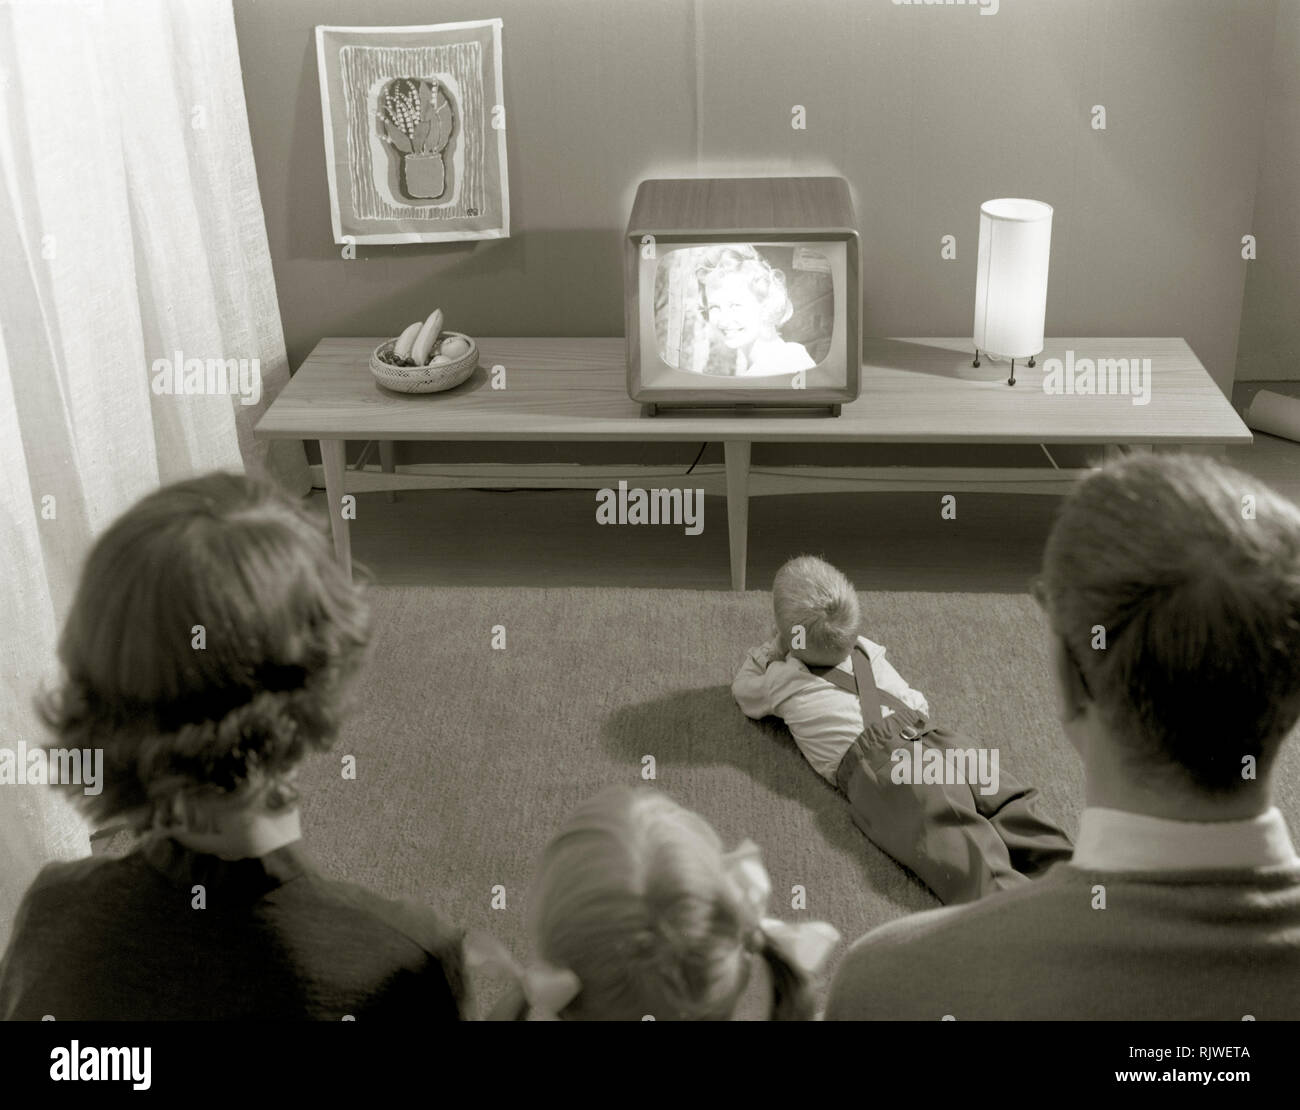 Television in the 1950s. A young couple is pictured in front of a typical 50s television set. The whole family is  admiring the modern kind of home entertainment.  Sweden 1958. ref 3789 Stock Photo